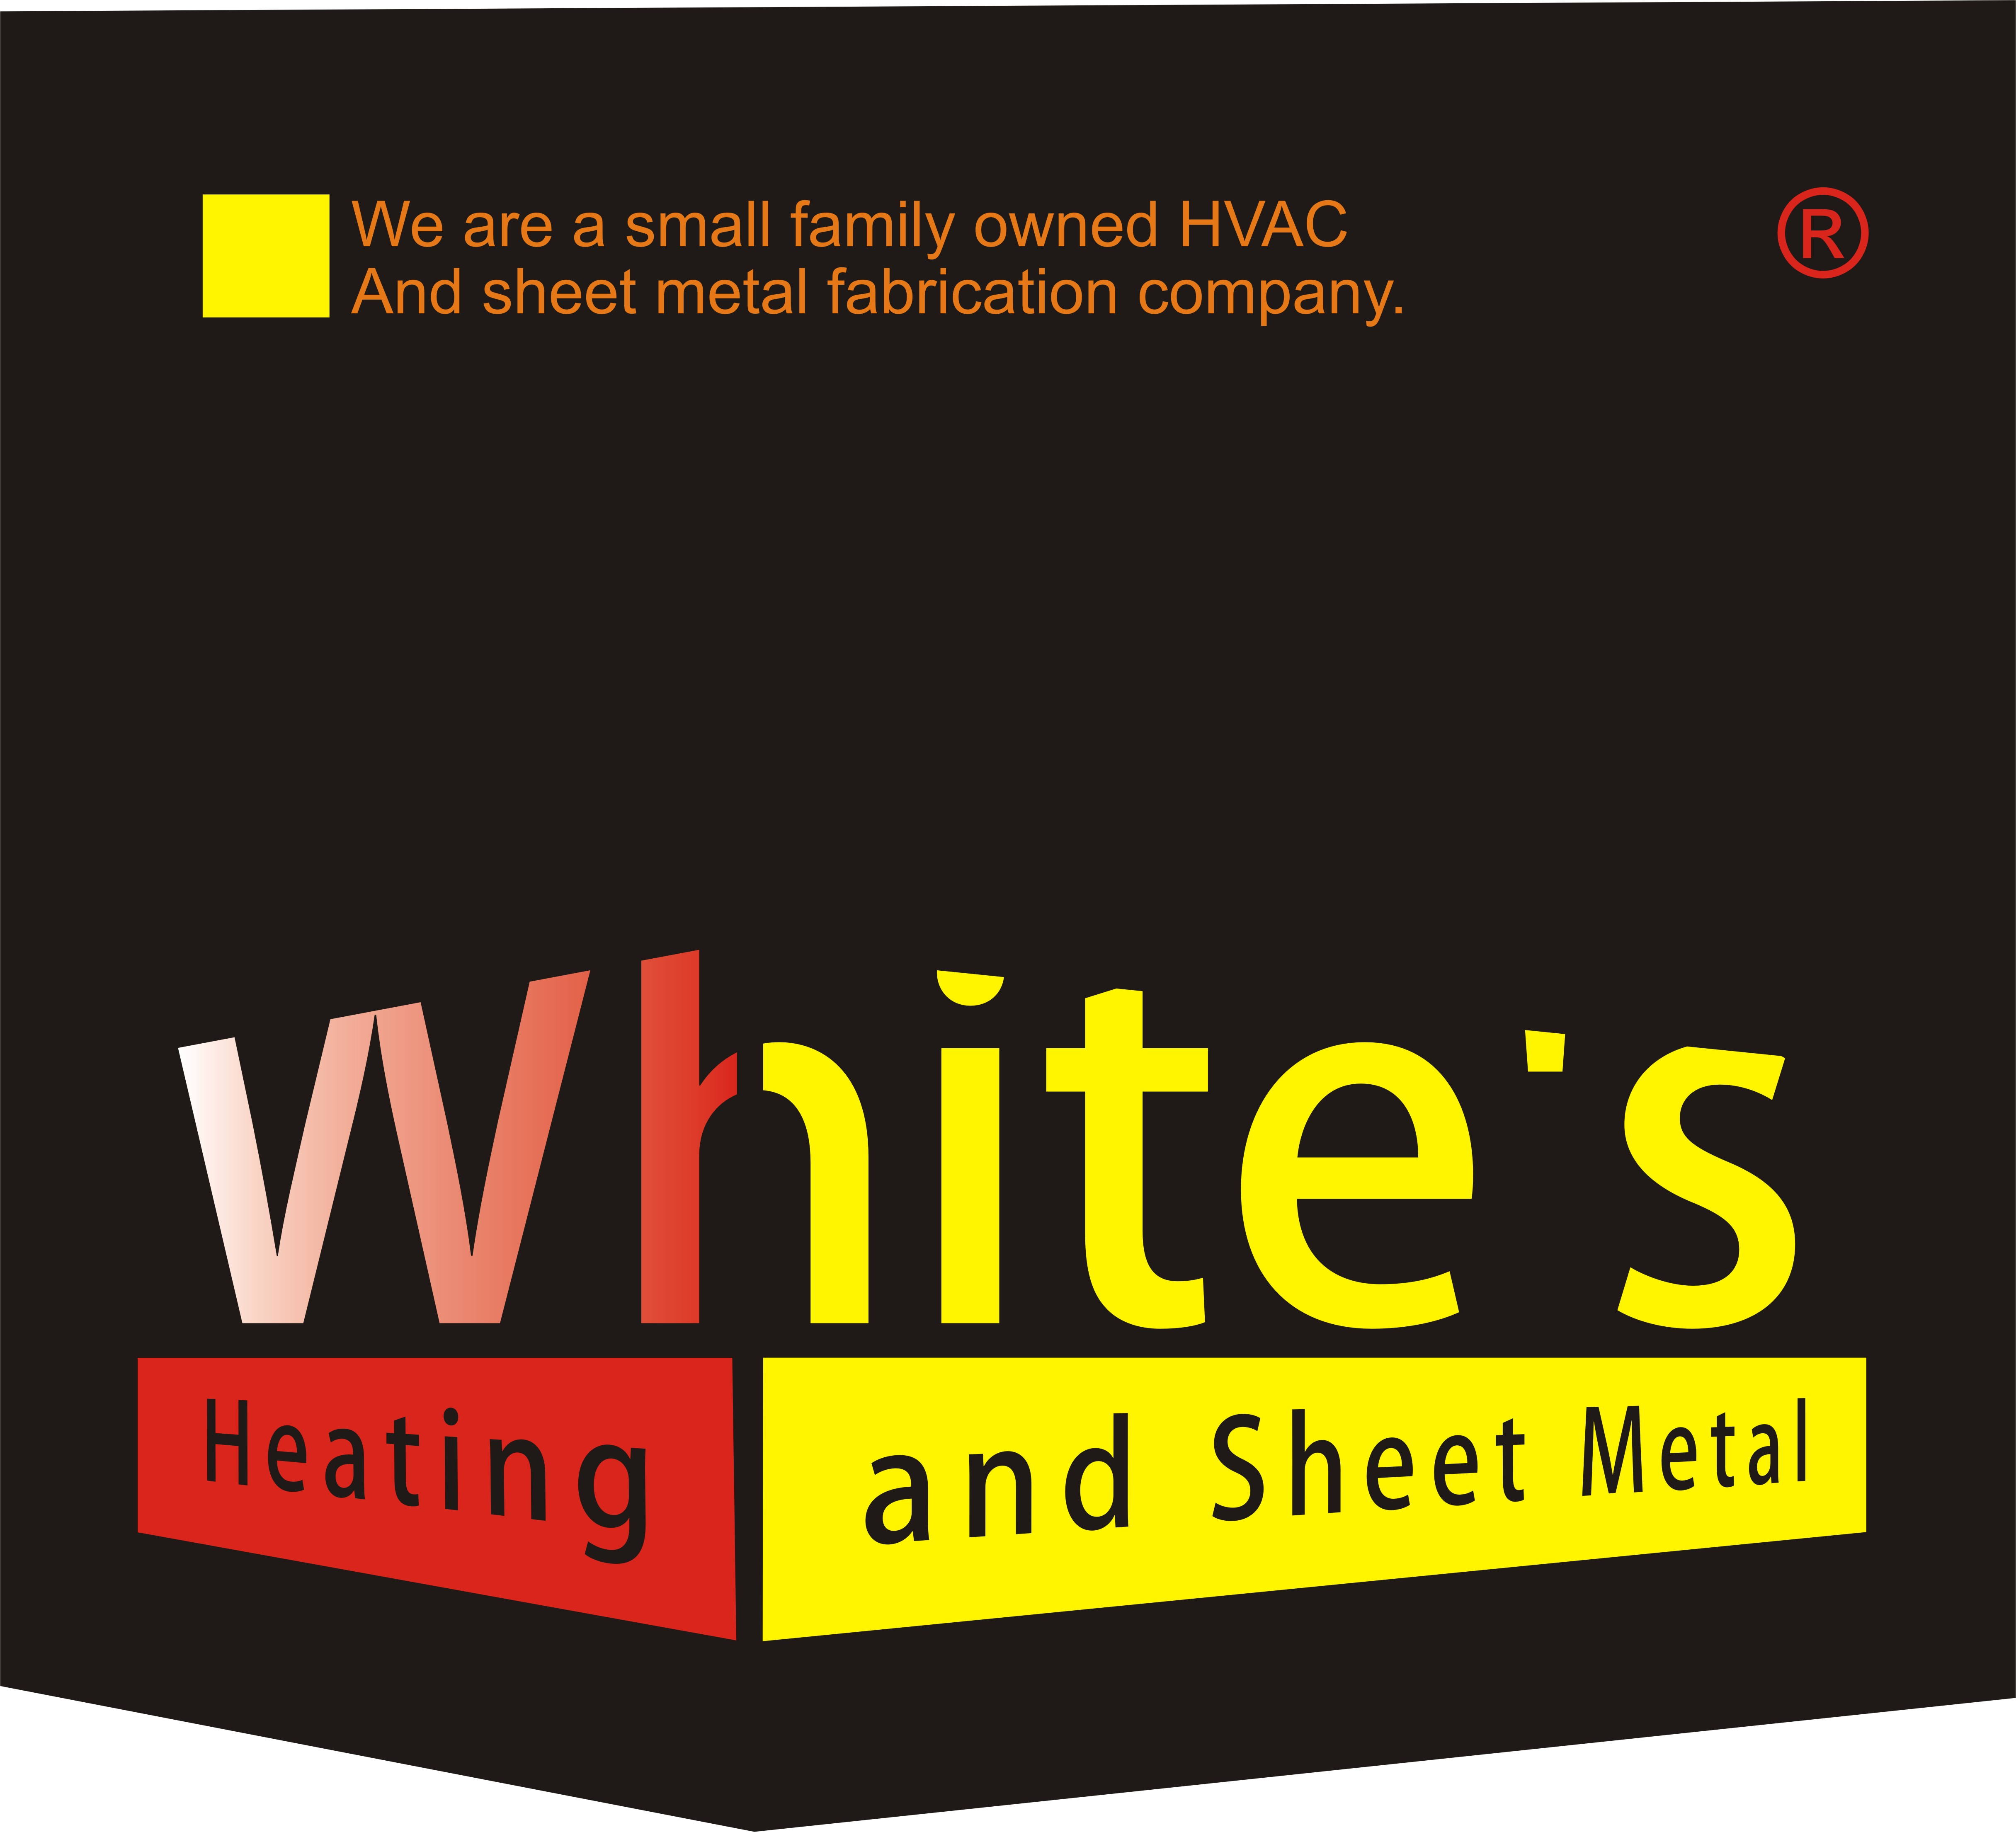 Logo Design by Eic Limber - Entry No. 138 in the Logo Design Contest Imaginative Logo Design for White's Heating and Sheet Metal.